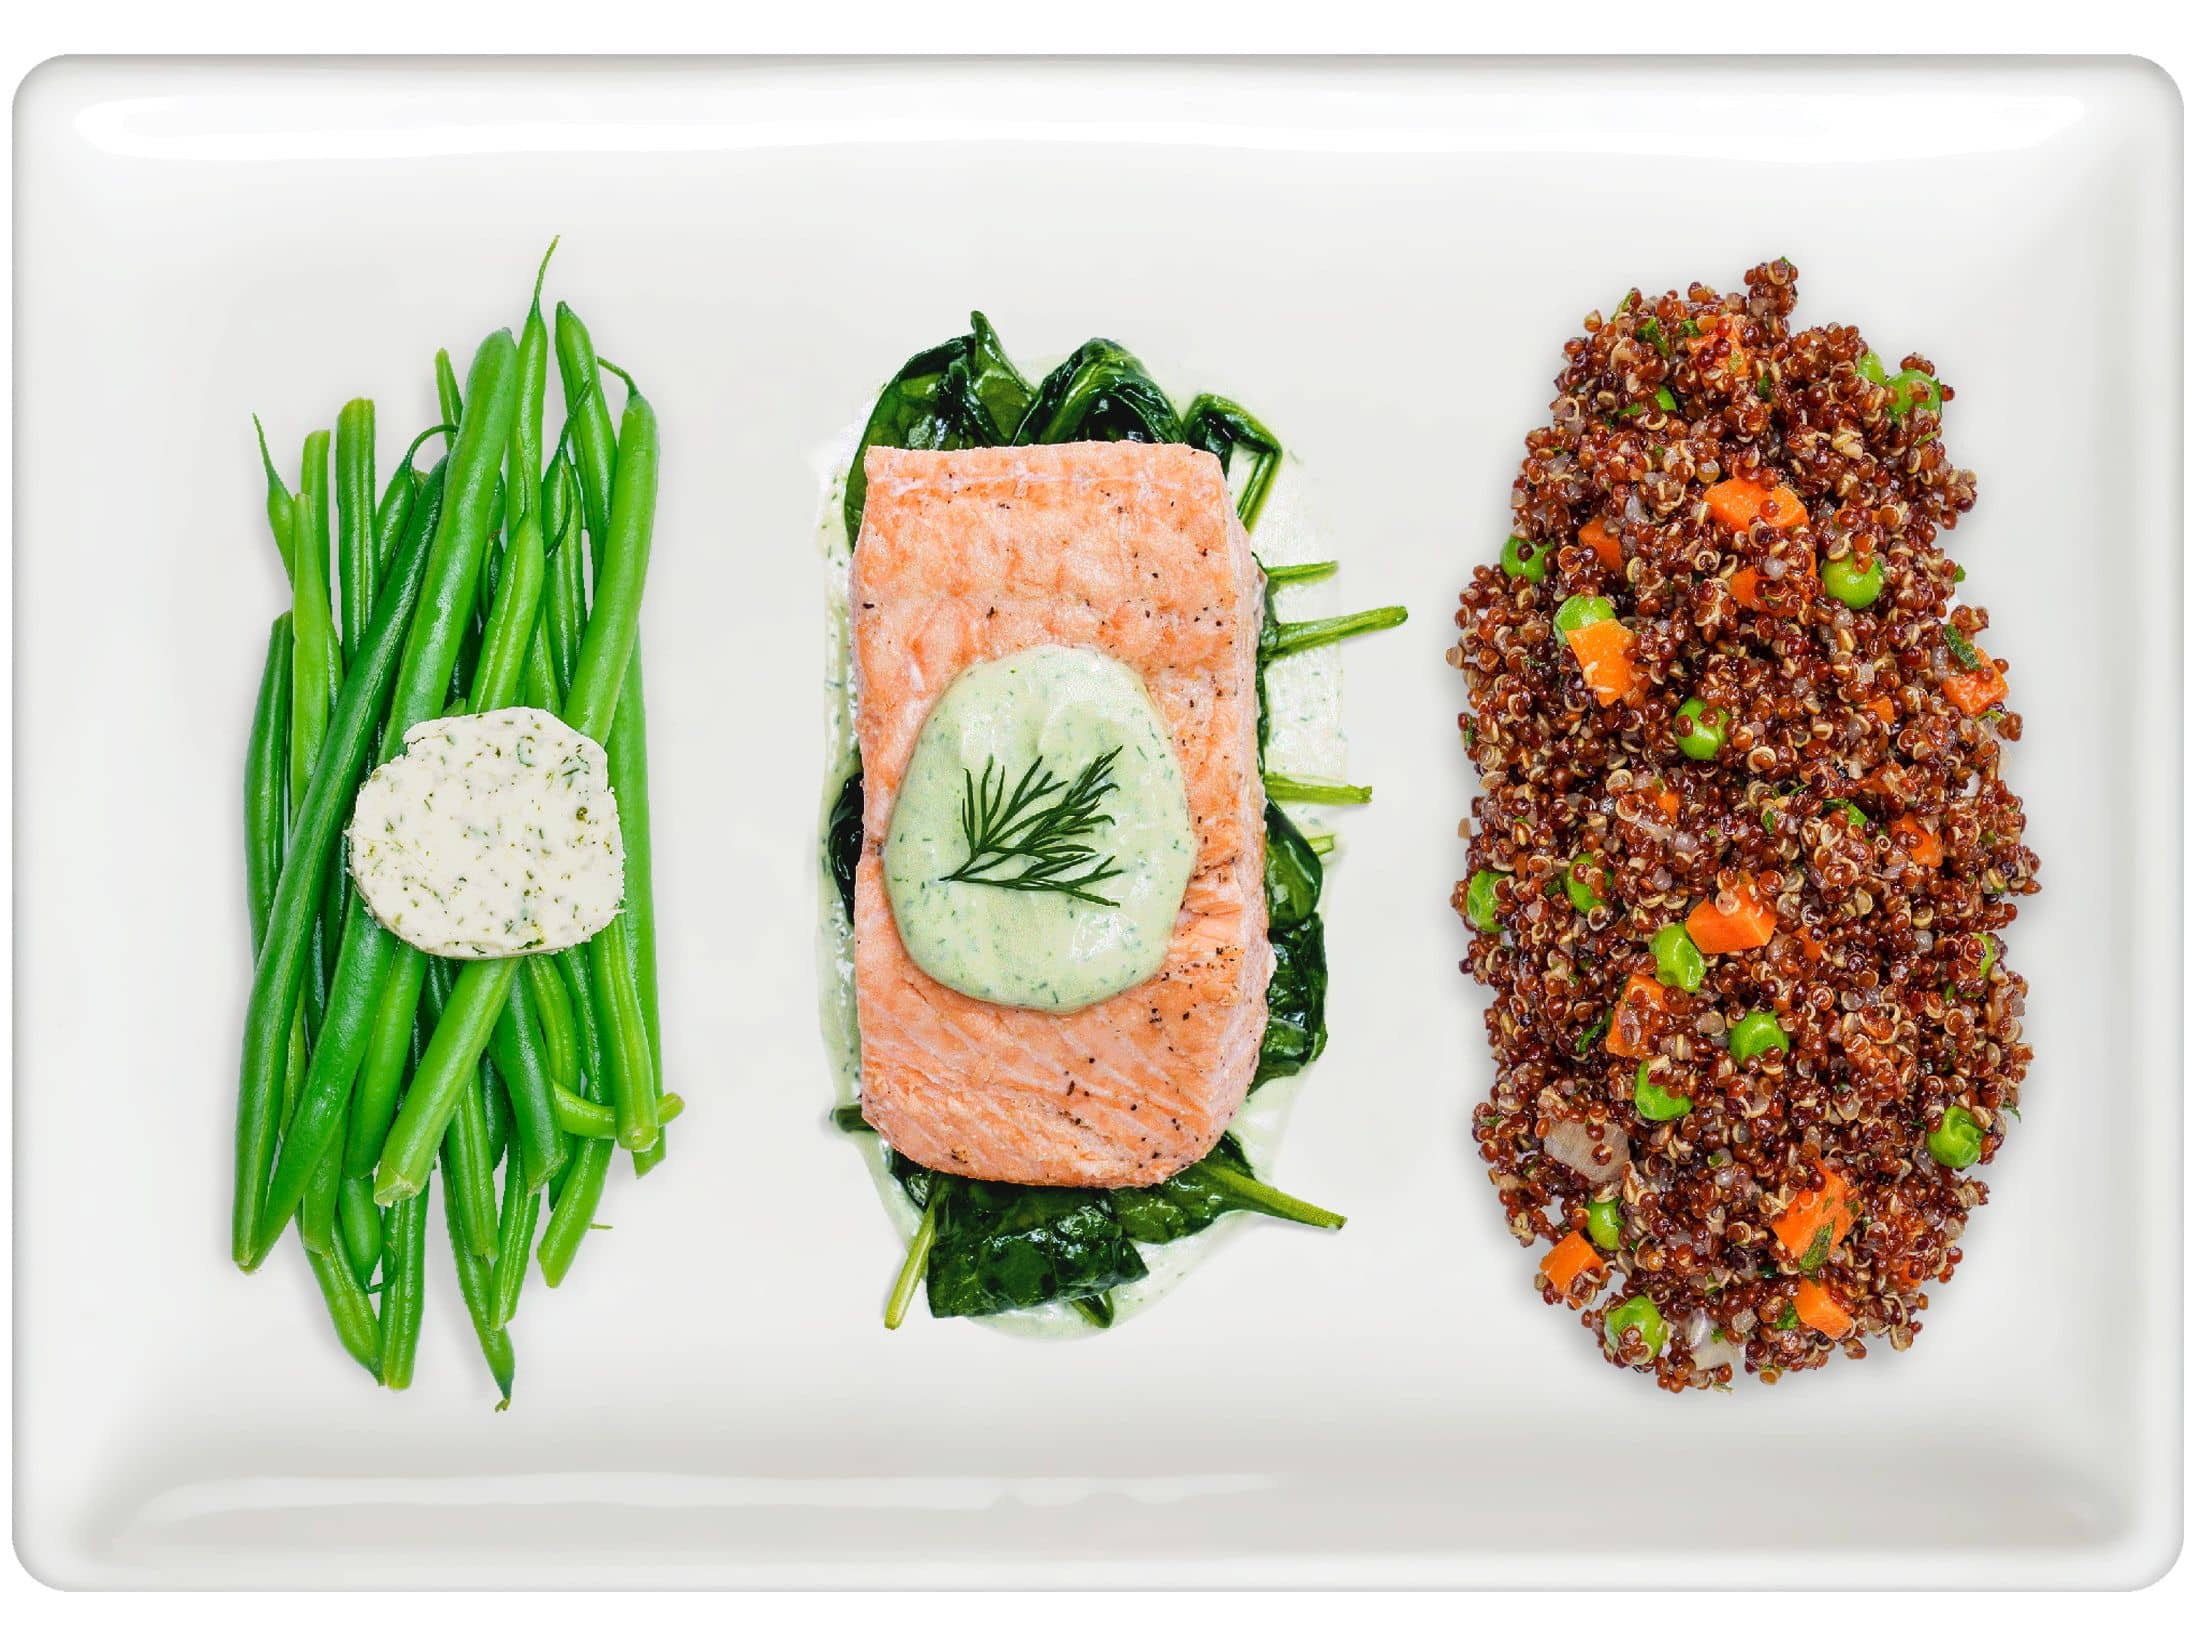 Green Beans, Poached Salmon, Quinoa Pilaf